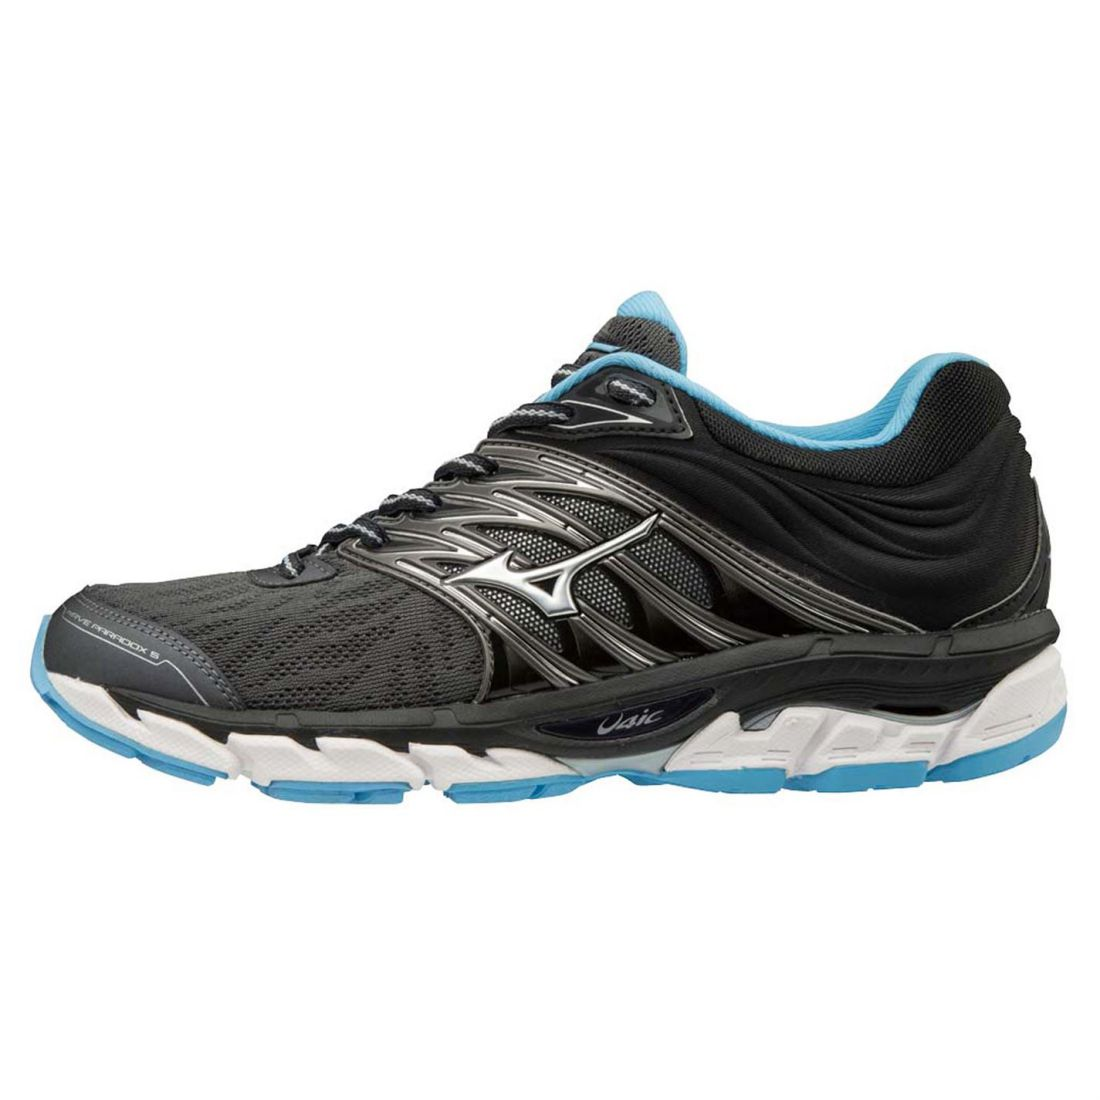 Womens Wave Paradox 5 Running shoes Road Mesh Upper